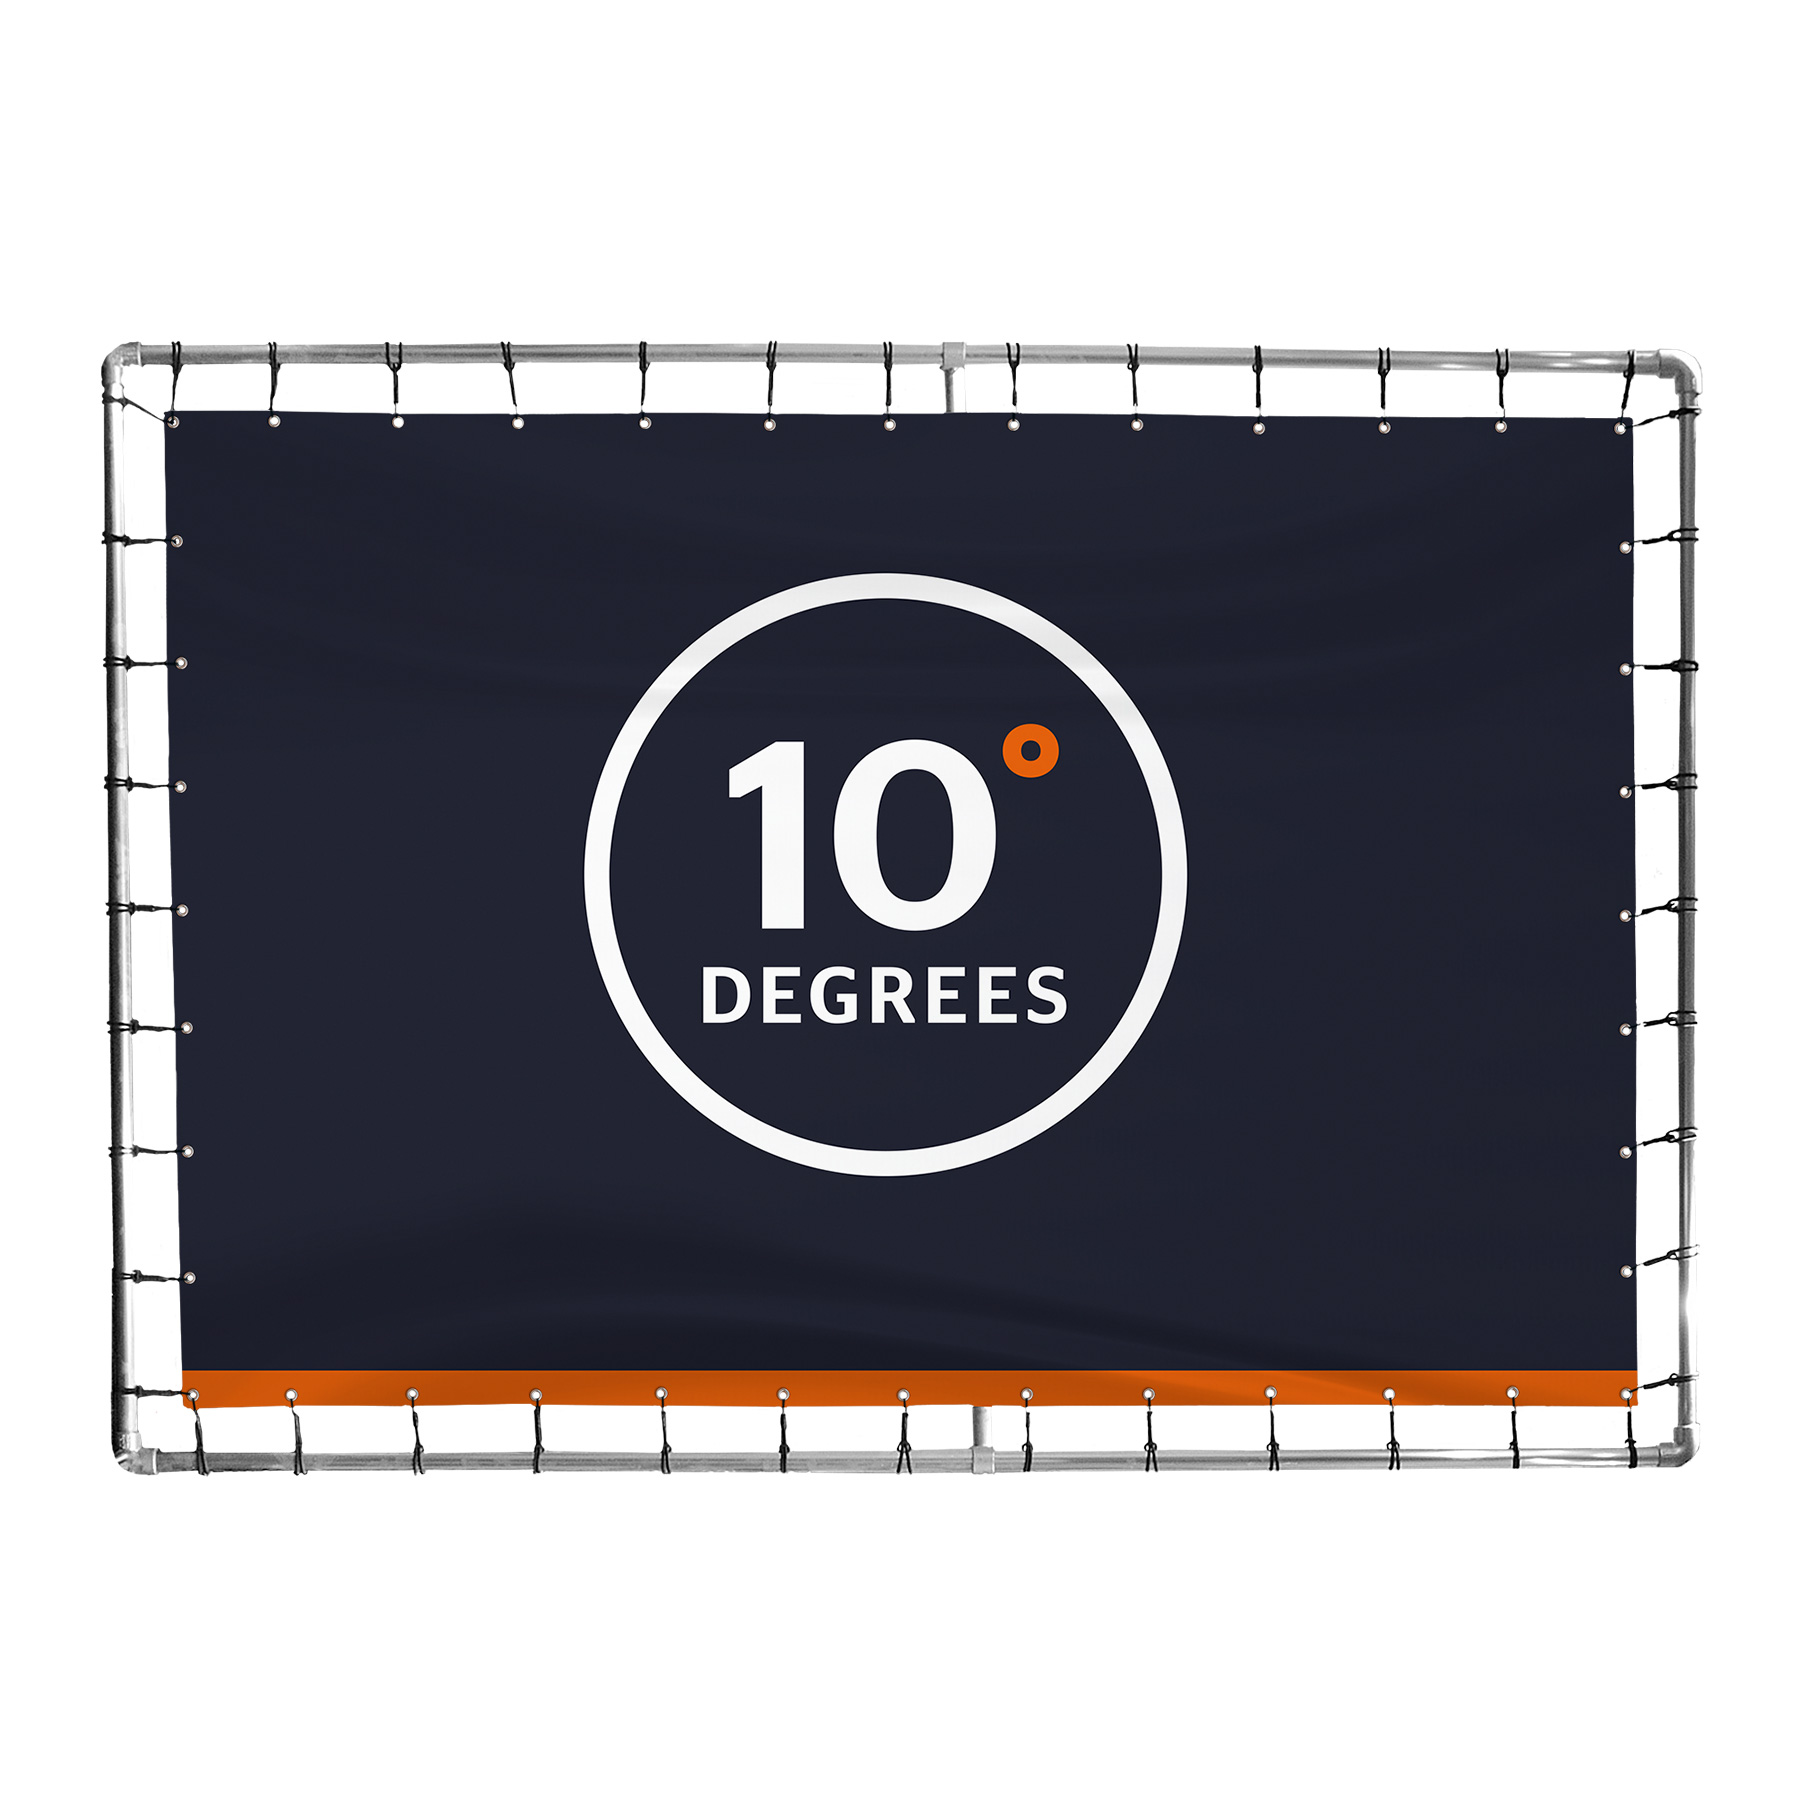 Spandoek 10 Degrees